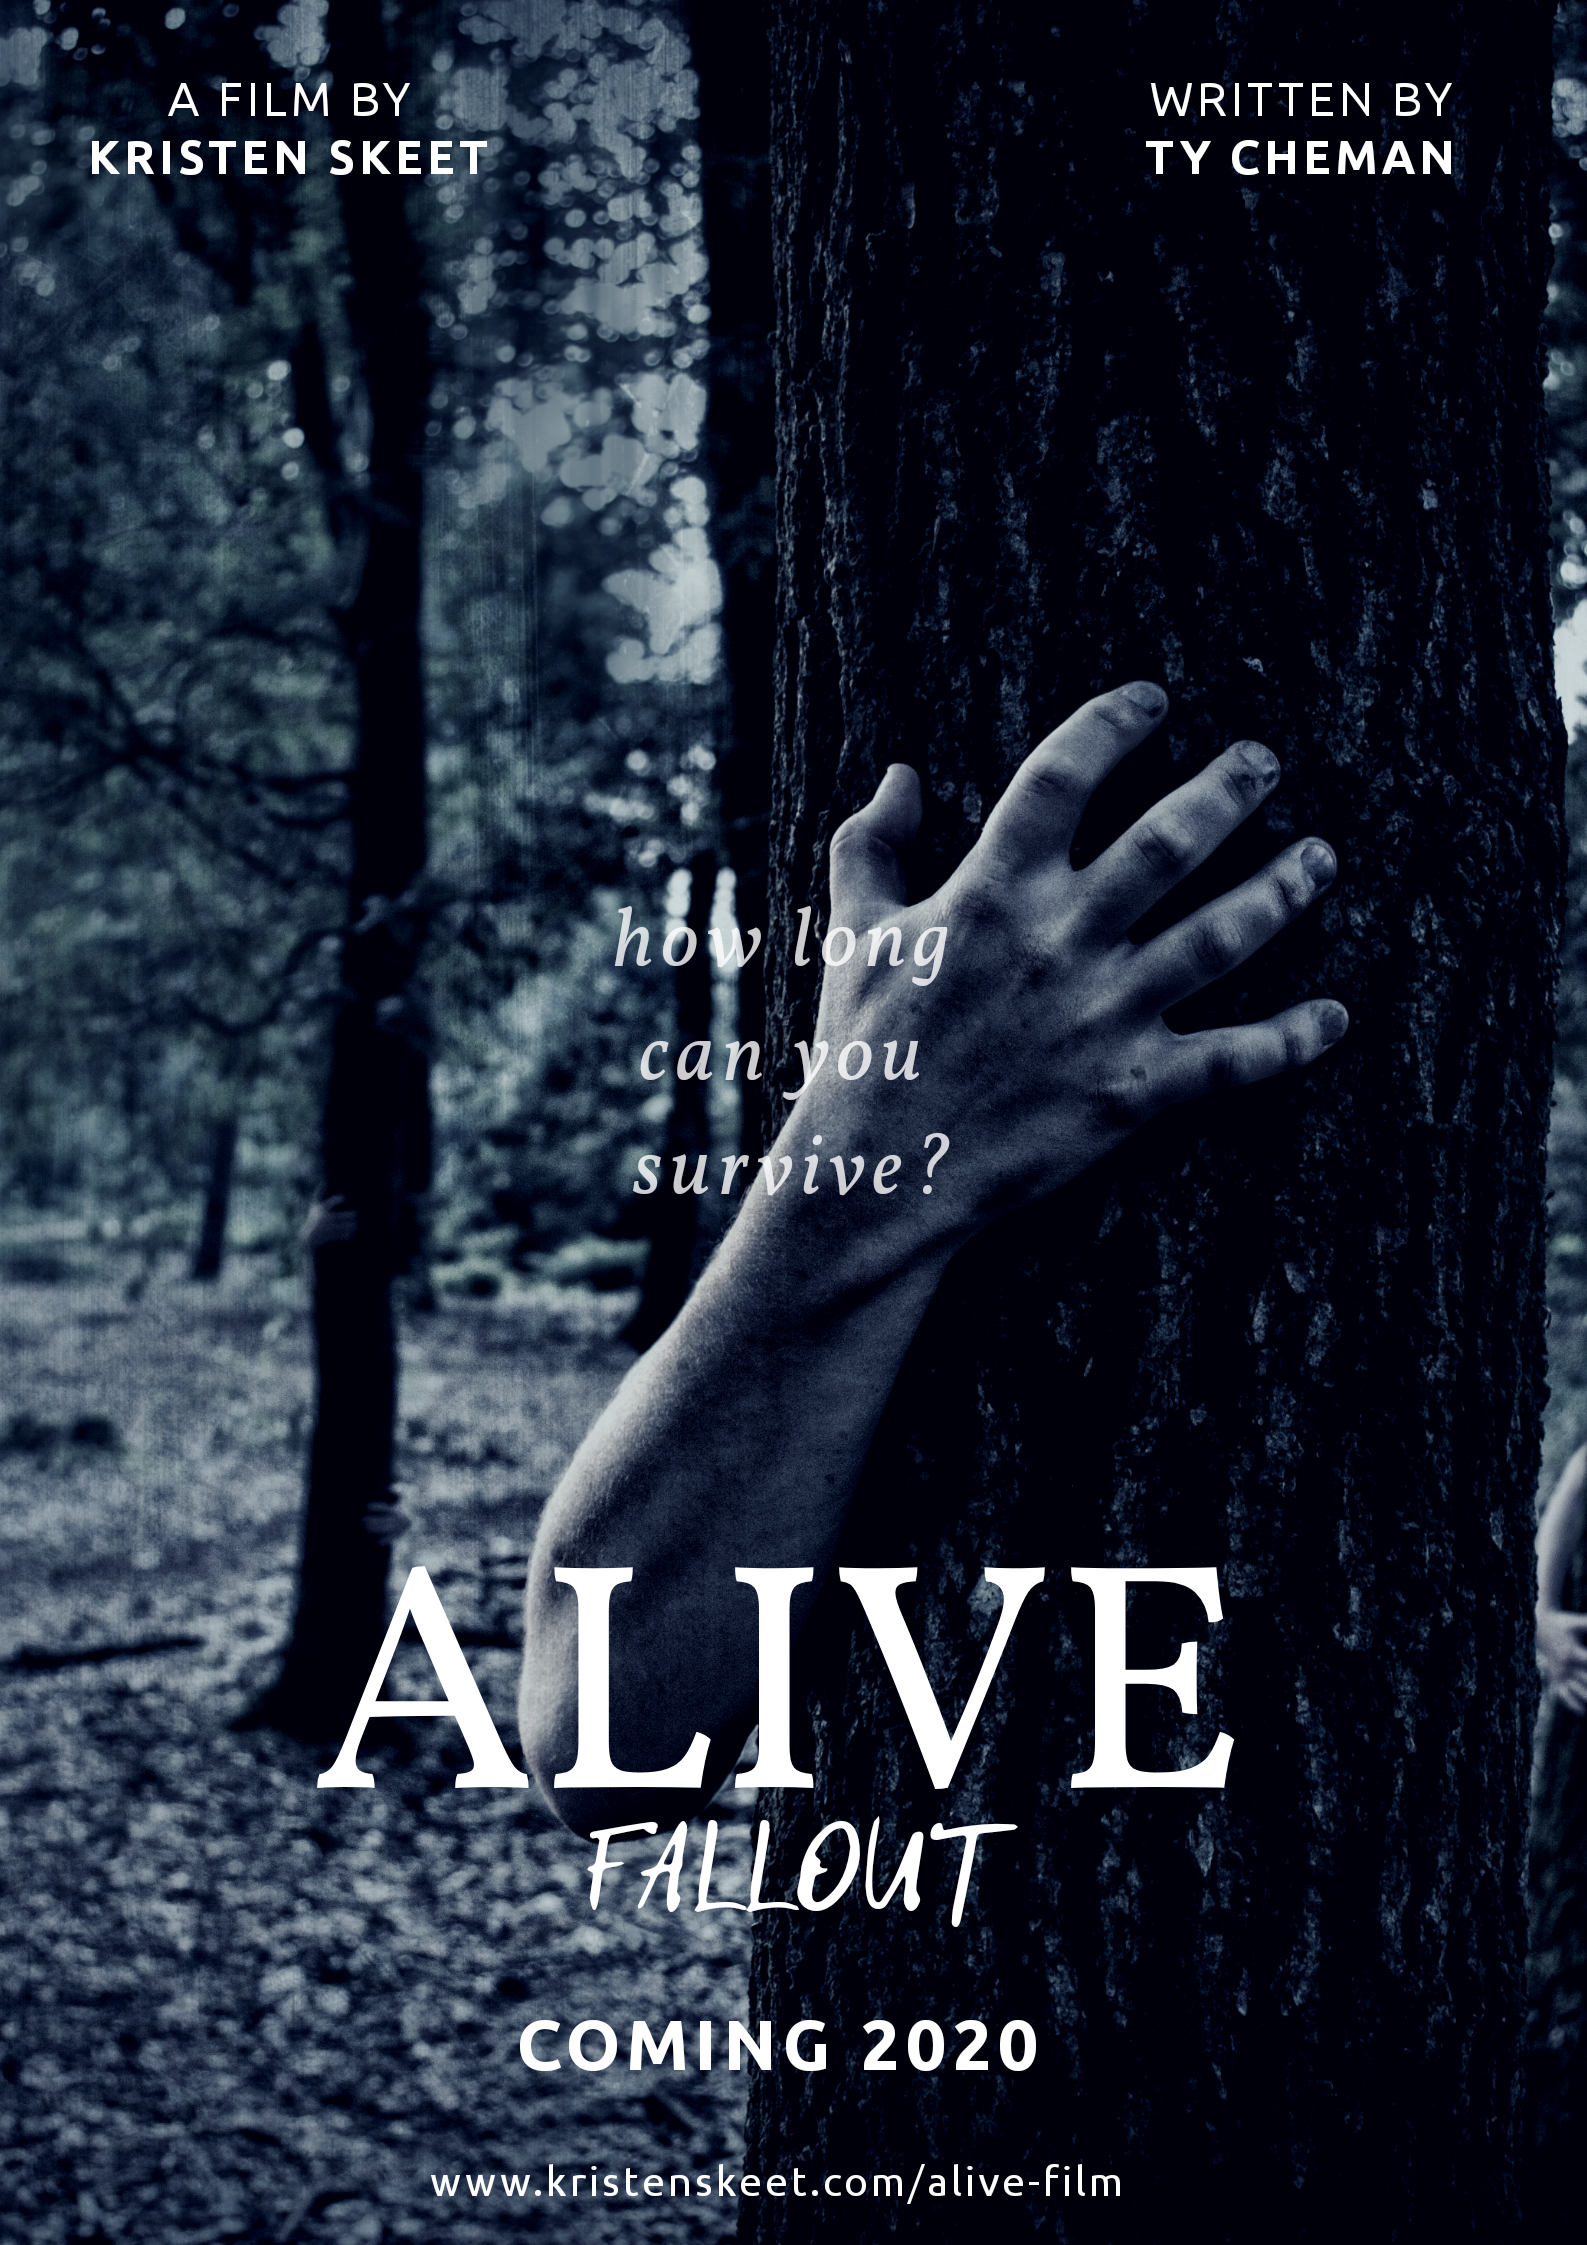 Alive: Fallout - A film by Kristen Skeet.Written by Ty Cheman.In a post-apocalyptic world, a small group of survivors attempts to make it to safety.